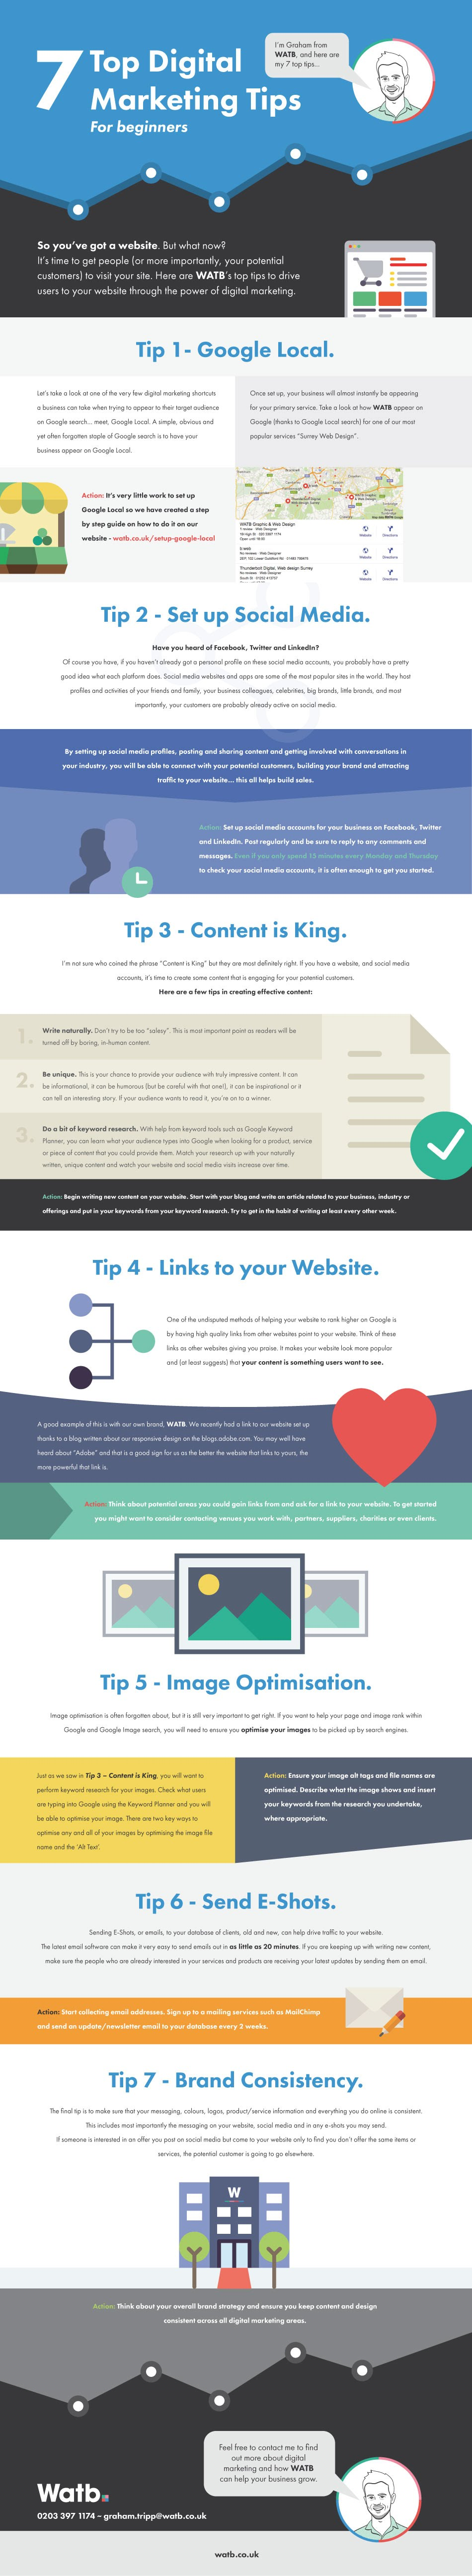 7 Top Digital Marketing Tips [Infographic] | Social Media Today